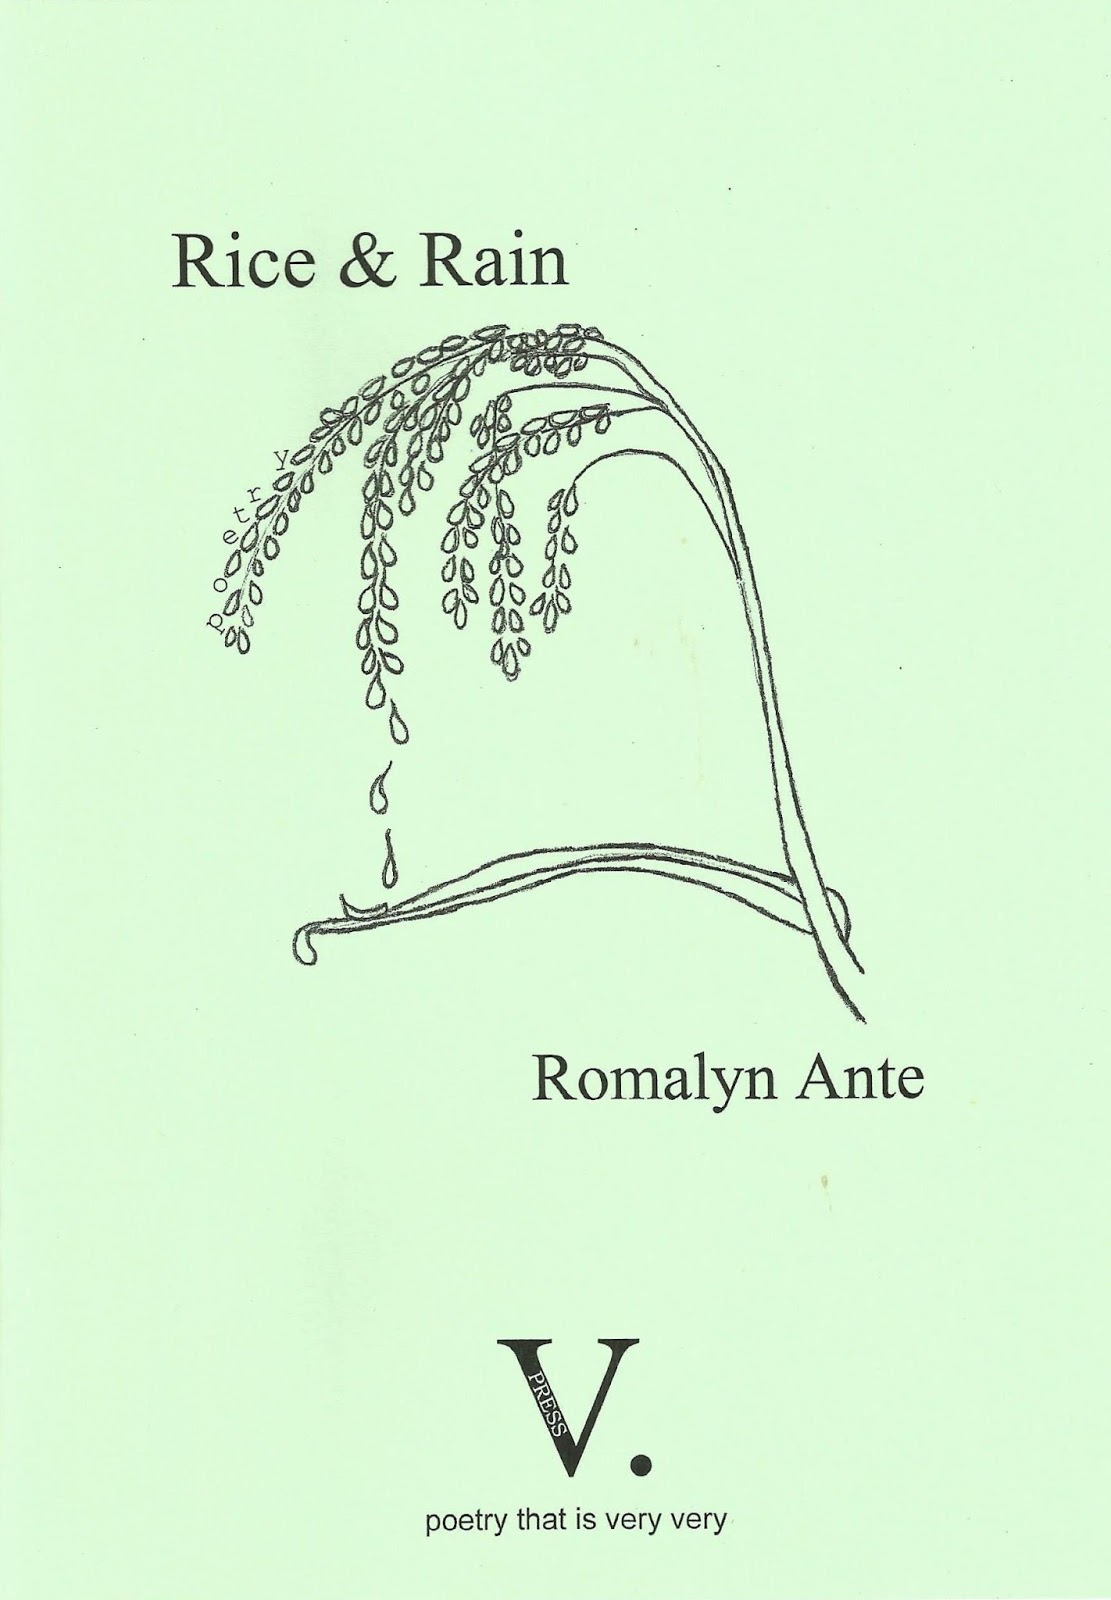 Pale green A5 cover. Title is in lower case top quarter 'Rice & Rain' with a hand drawn picture of a dripping branch of a bush (maybe a rice plant?). Below this the name of the author in lower case to the right. The logo of the imprint is in the centre and large and bold black, the blackest thing on the page, centre at the bottom a giant V followed by a full stop. Below this in tiny lower case is the publisher's catchphrase: poetry that is very very